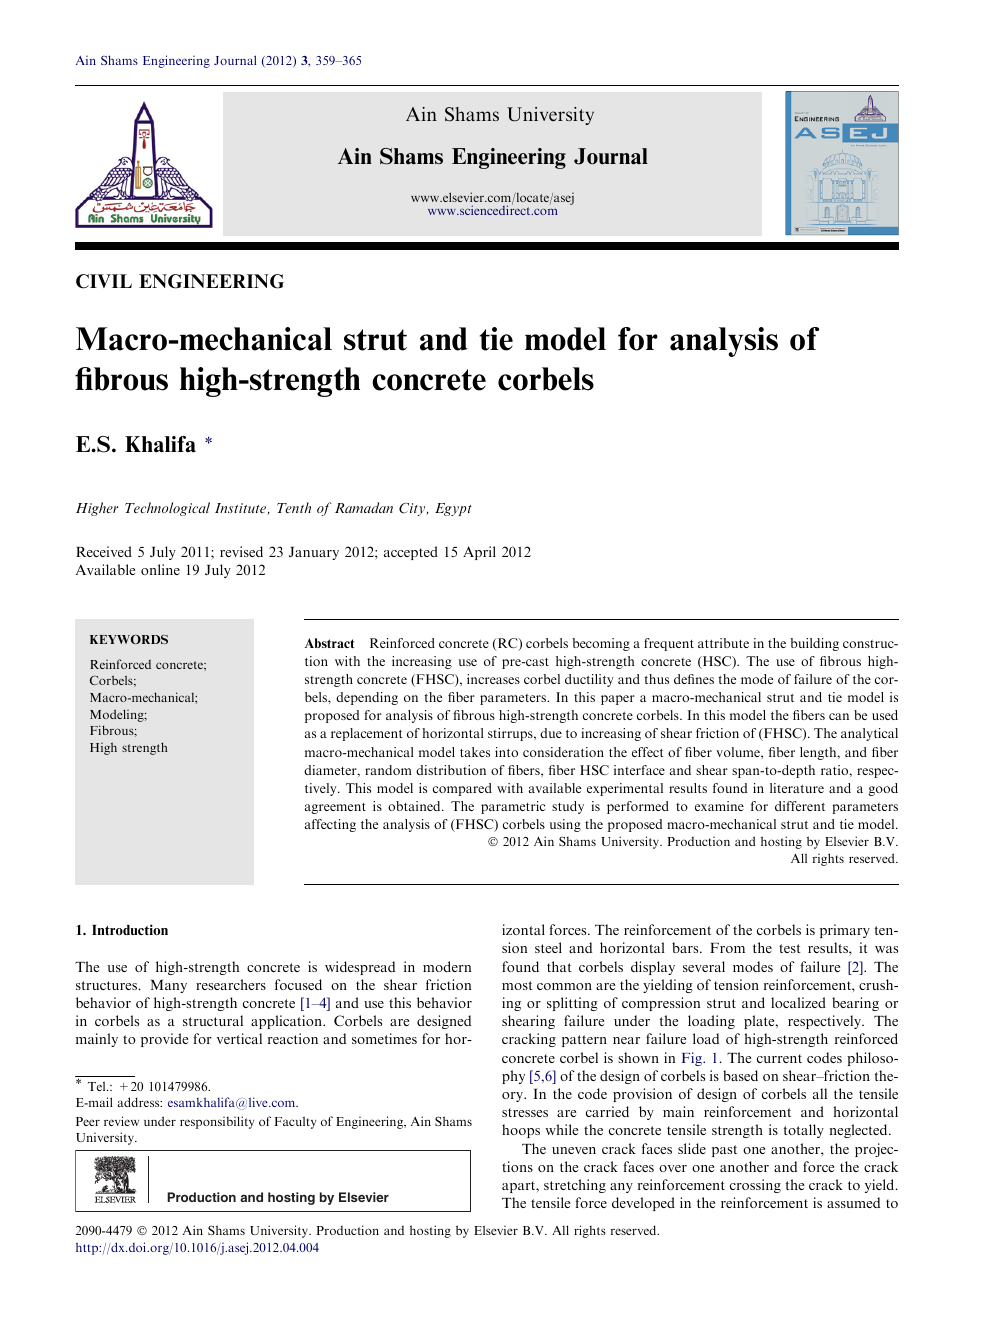 Macro-mechanical strut and tie model for analysis of fibrous